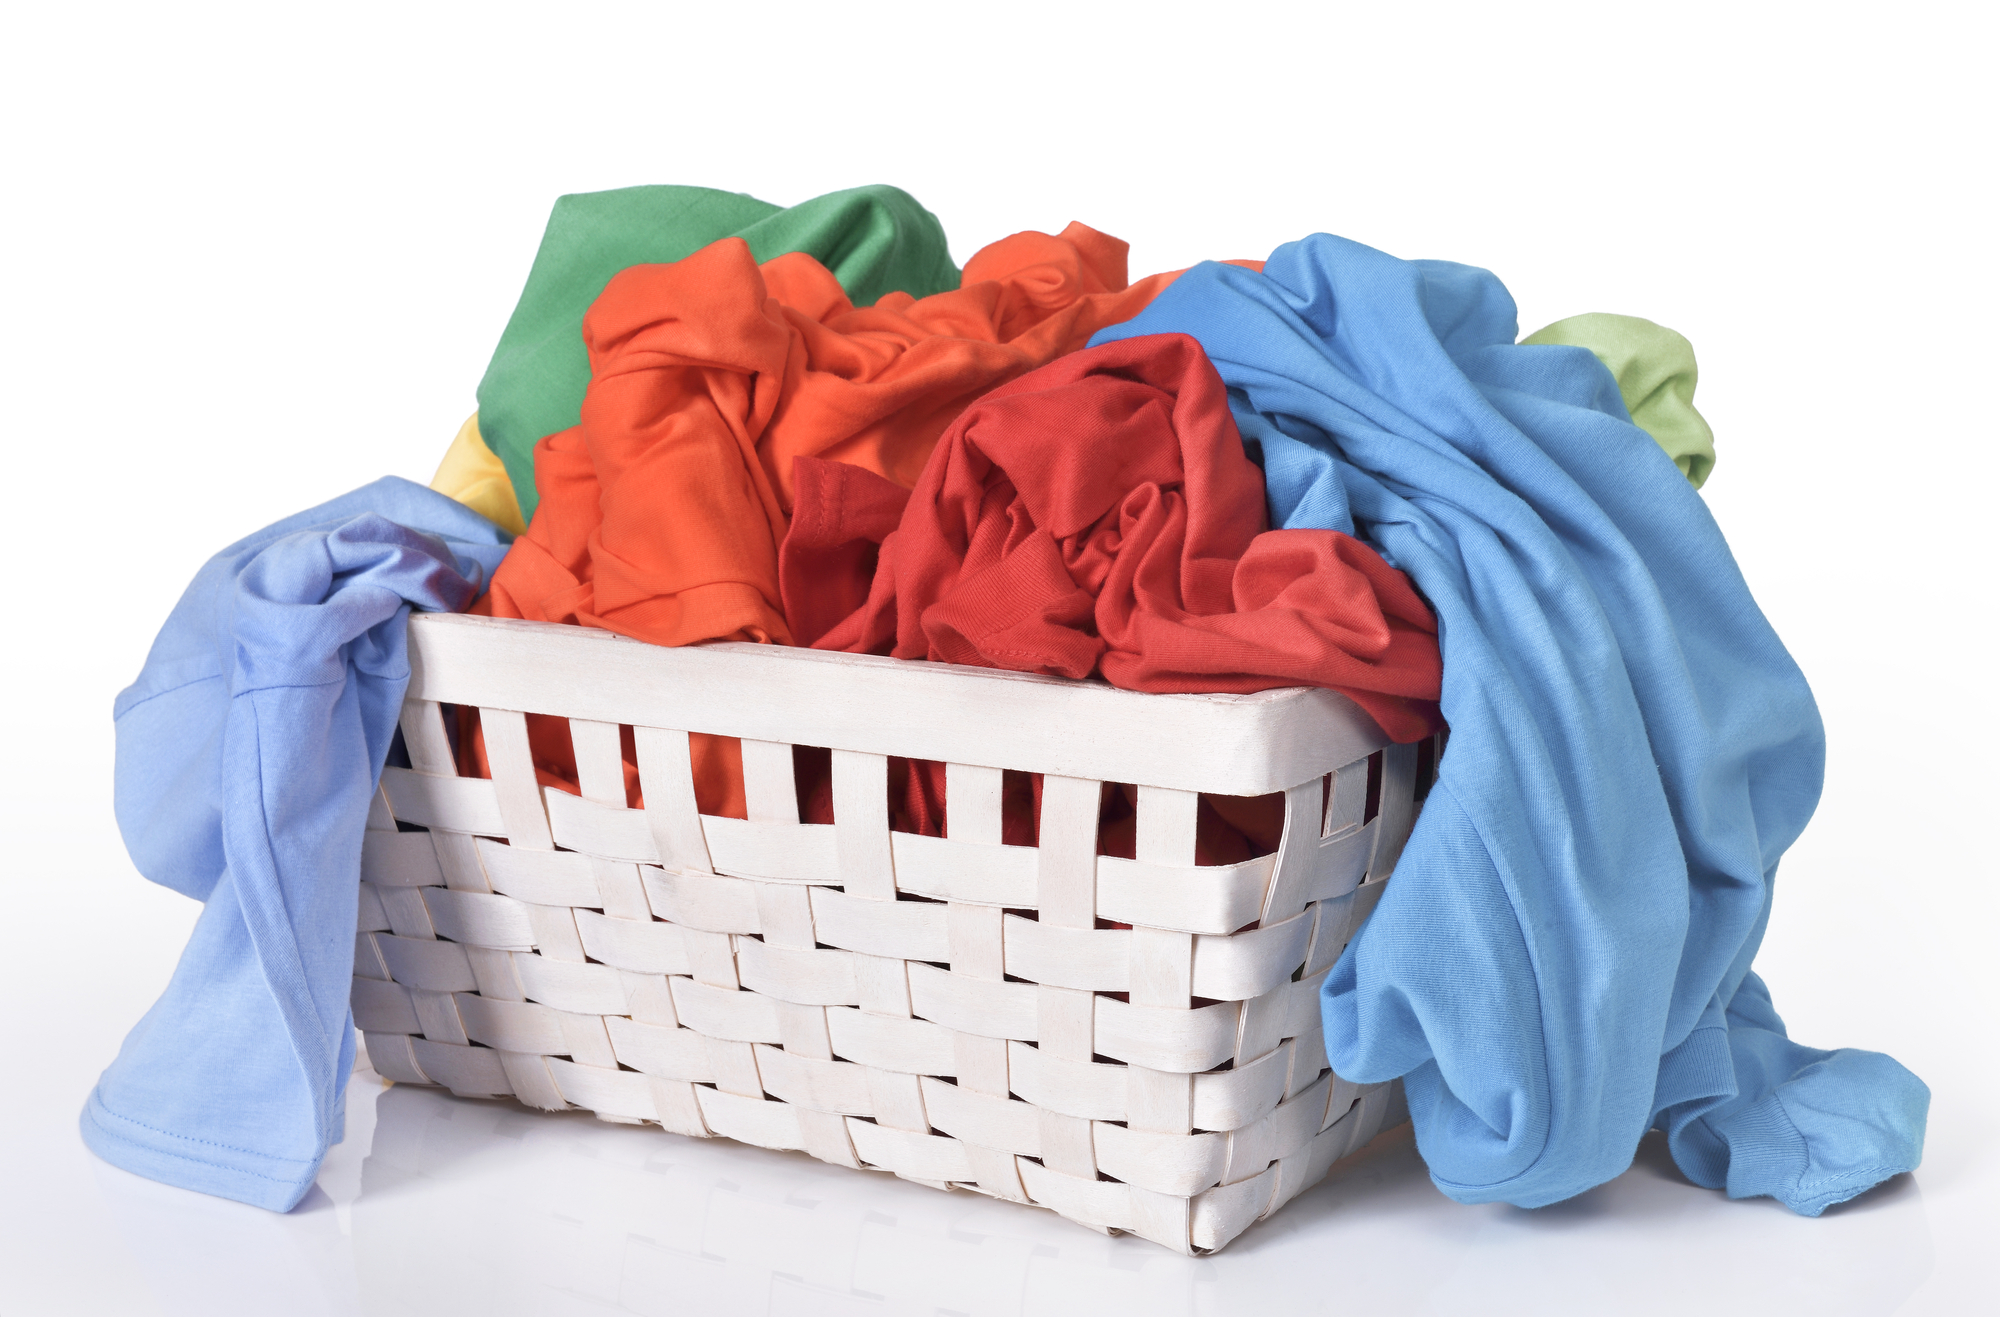 Colorful dirty clothes in laundry basket isolated over white background